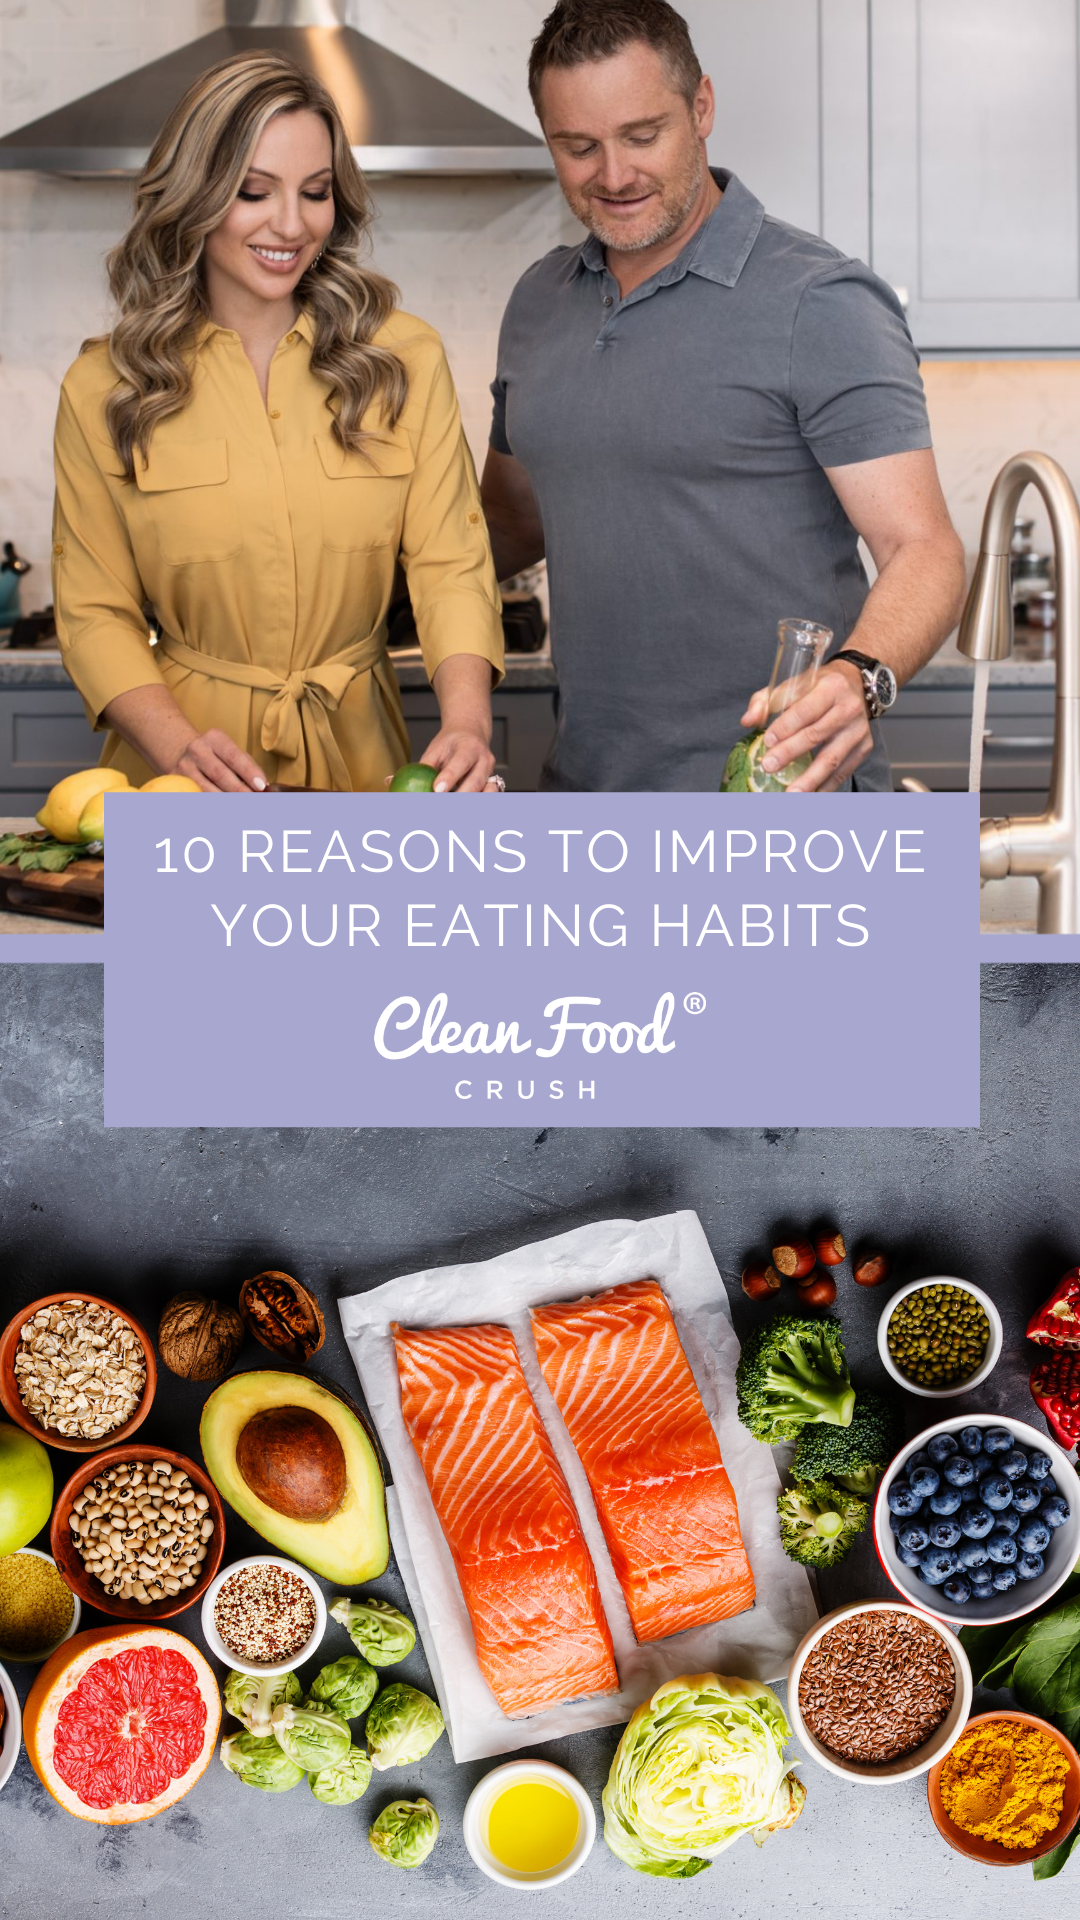 10 Reasons to Improve Your Eating Habits